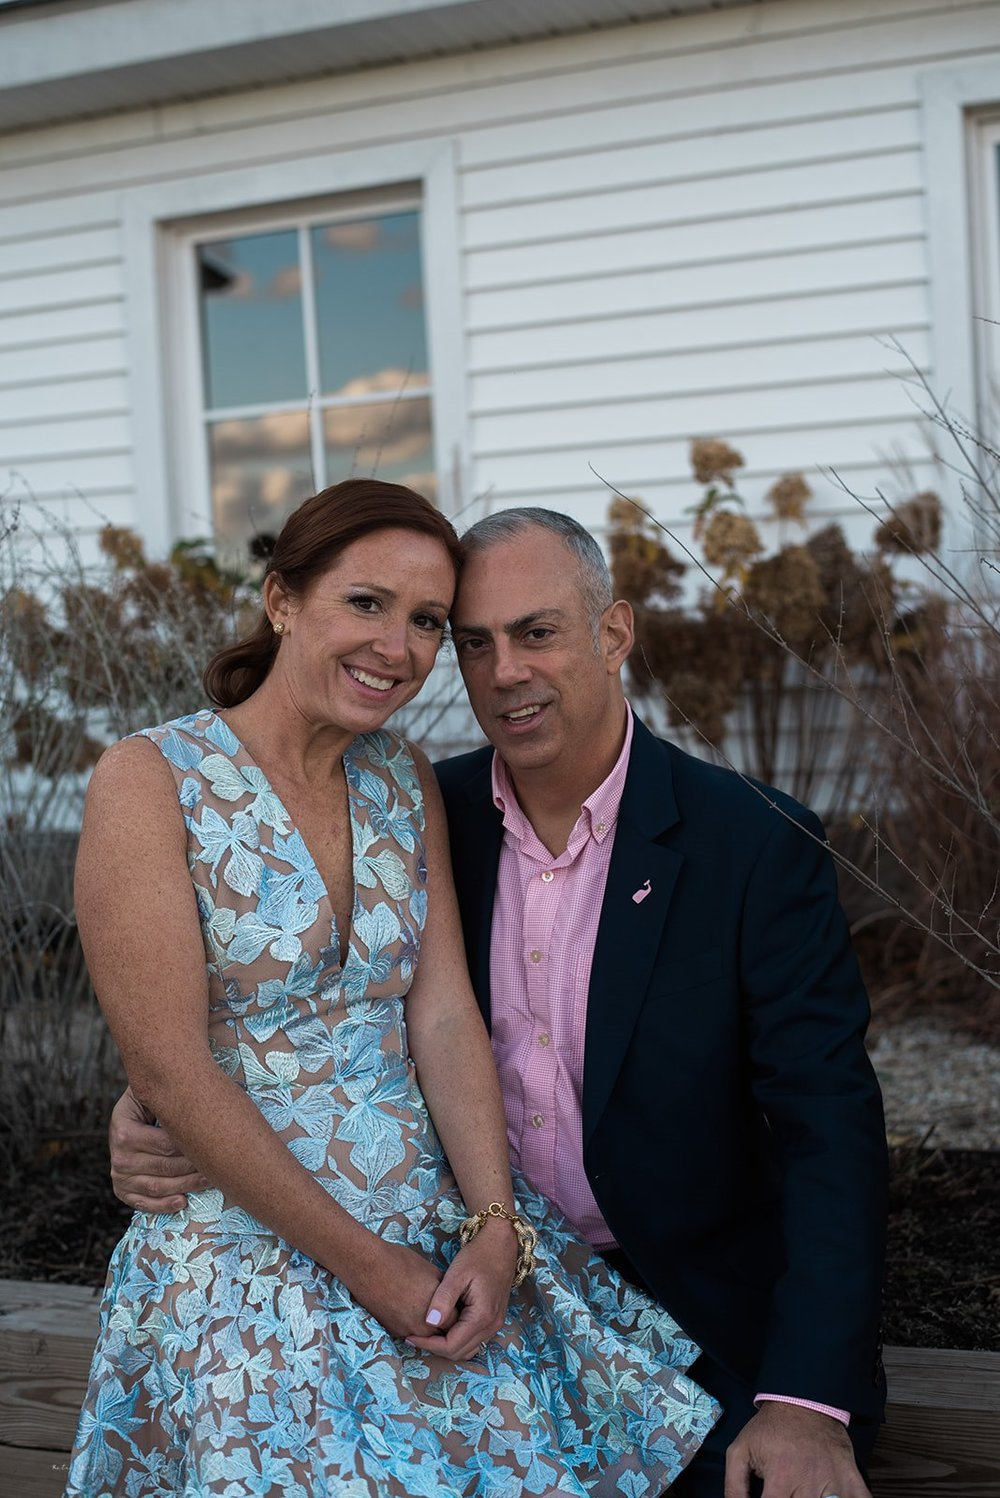 located in South Morris, CT. On a cool and windy Novemeber day L & J celebrated with their families and friends . They were married at a small private cereomy a